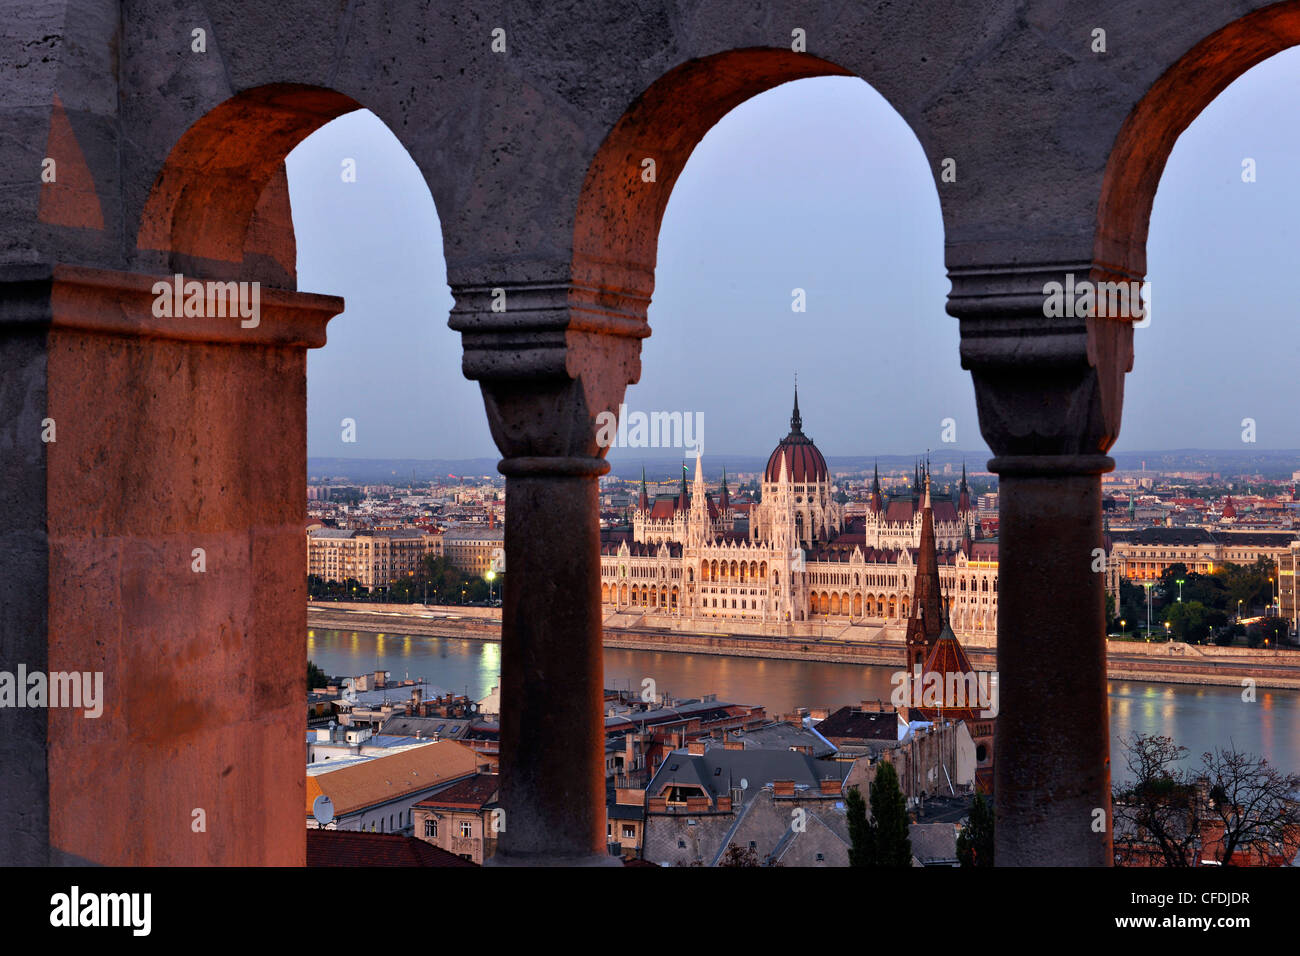 View from the Fisherman's Bastion onto the House of Parliament at Danube river, Budapest, Hungary, Europe - Stock Image